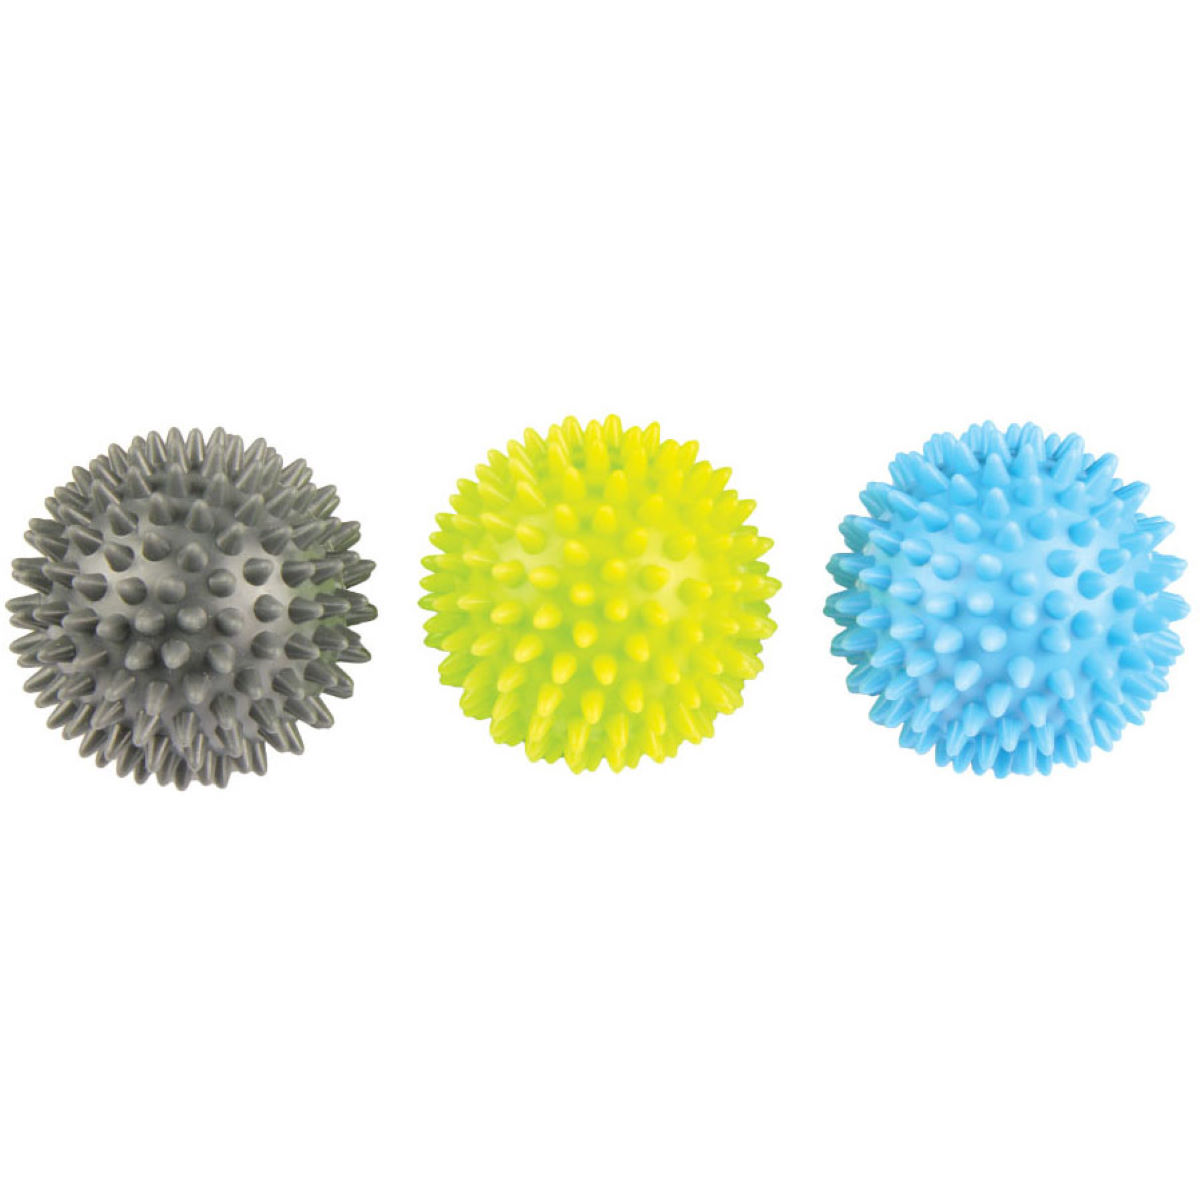 Spikey Massage Ball (Set of 3)   Massage Balls